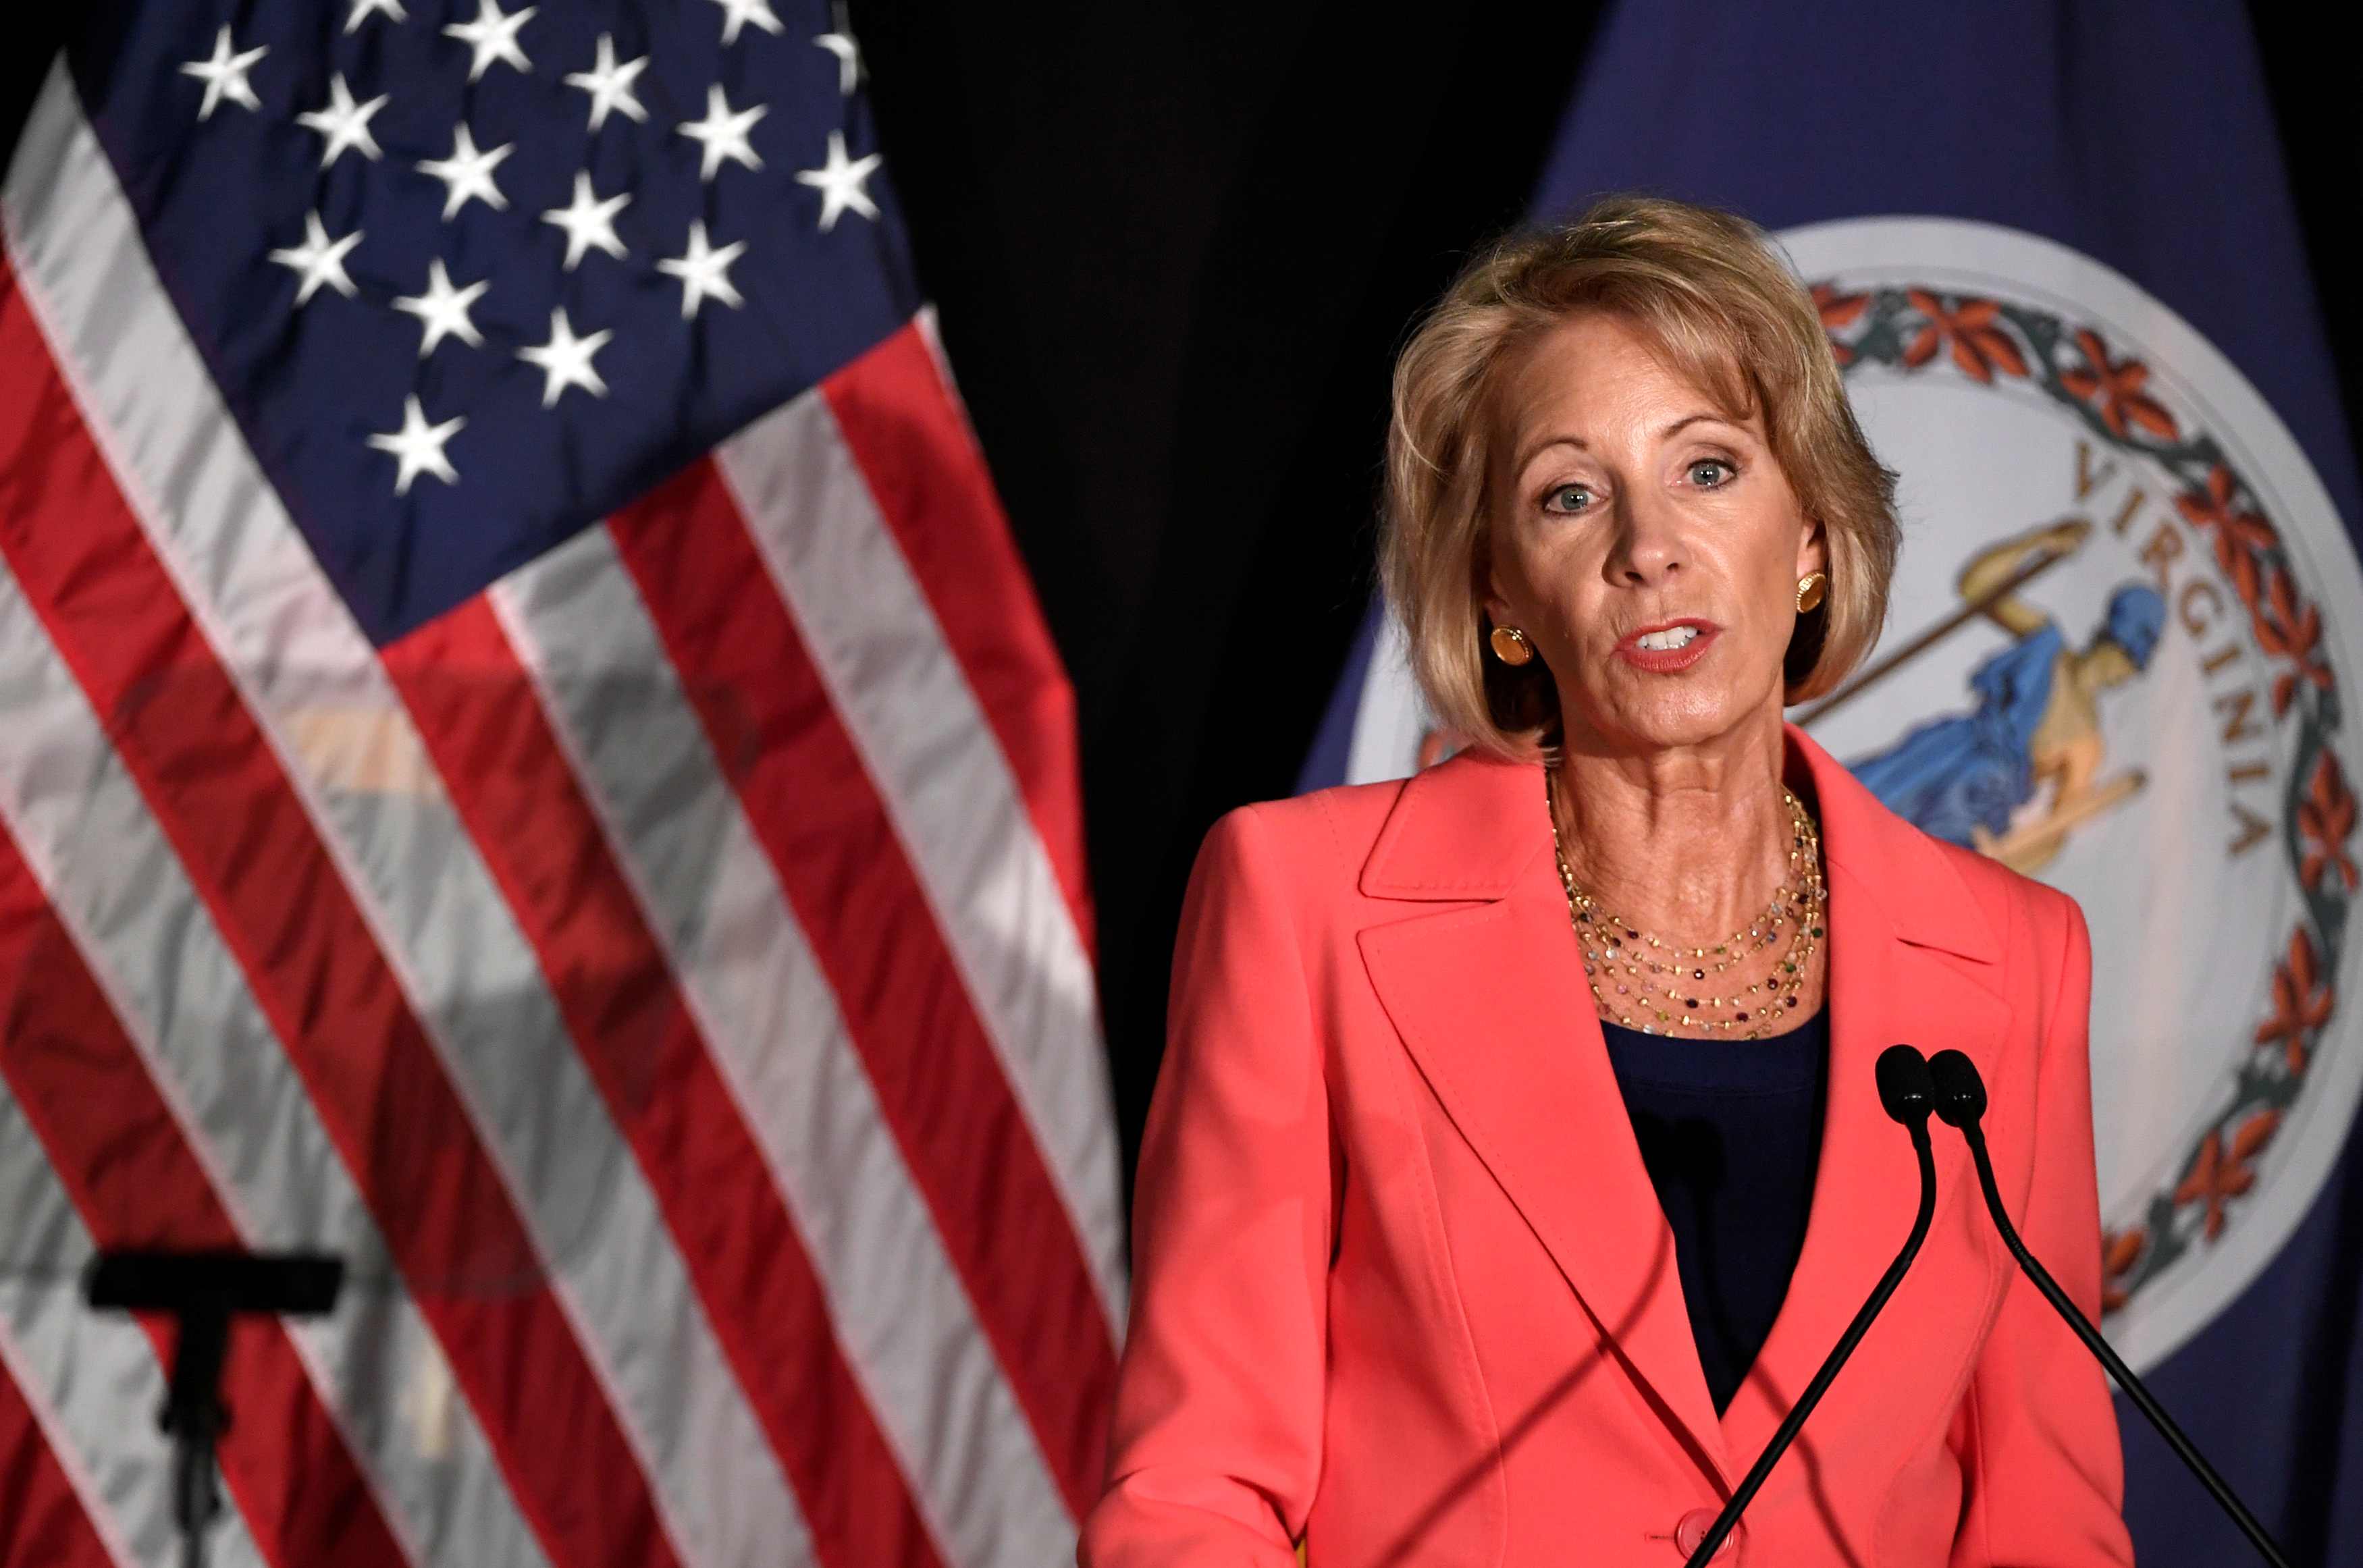 The Department of Education's proposed sexual harassment rules